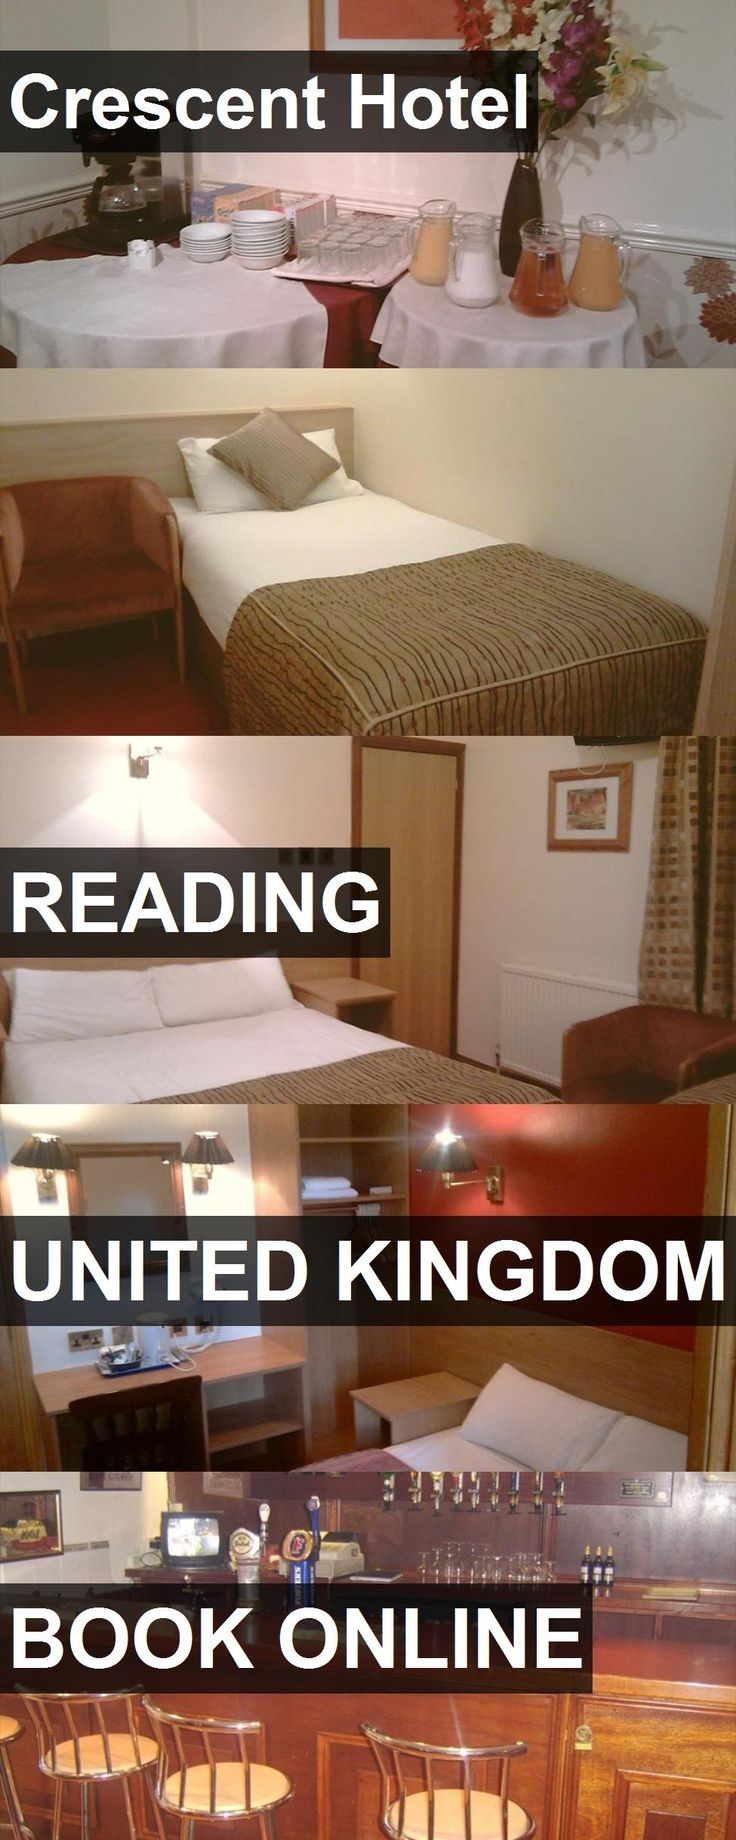 Hotel Crescent Hotel in Reading, United Kingdom. For more information, photos, reviews and best prices please follow the link. #UnitedKingdom #Reading #CrescentHotel #hotel #travel #vacation